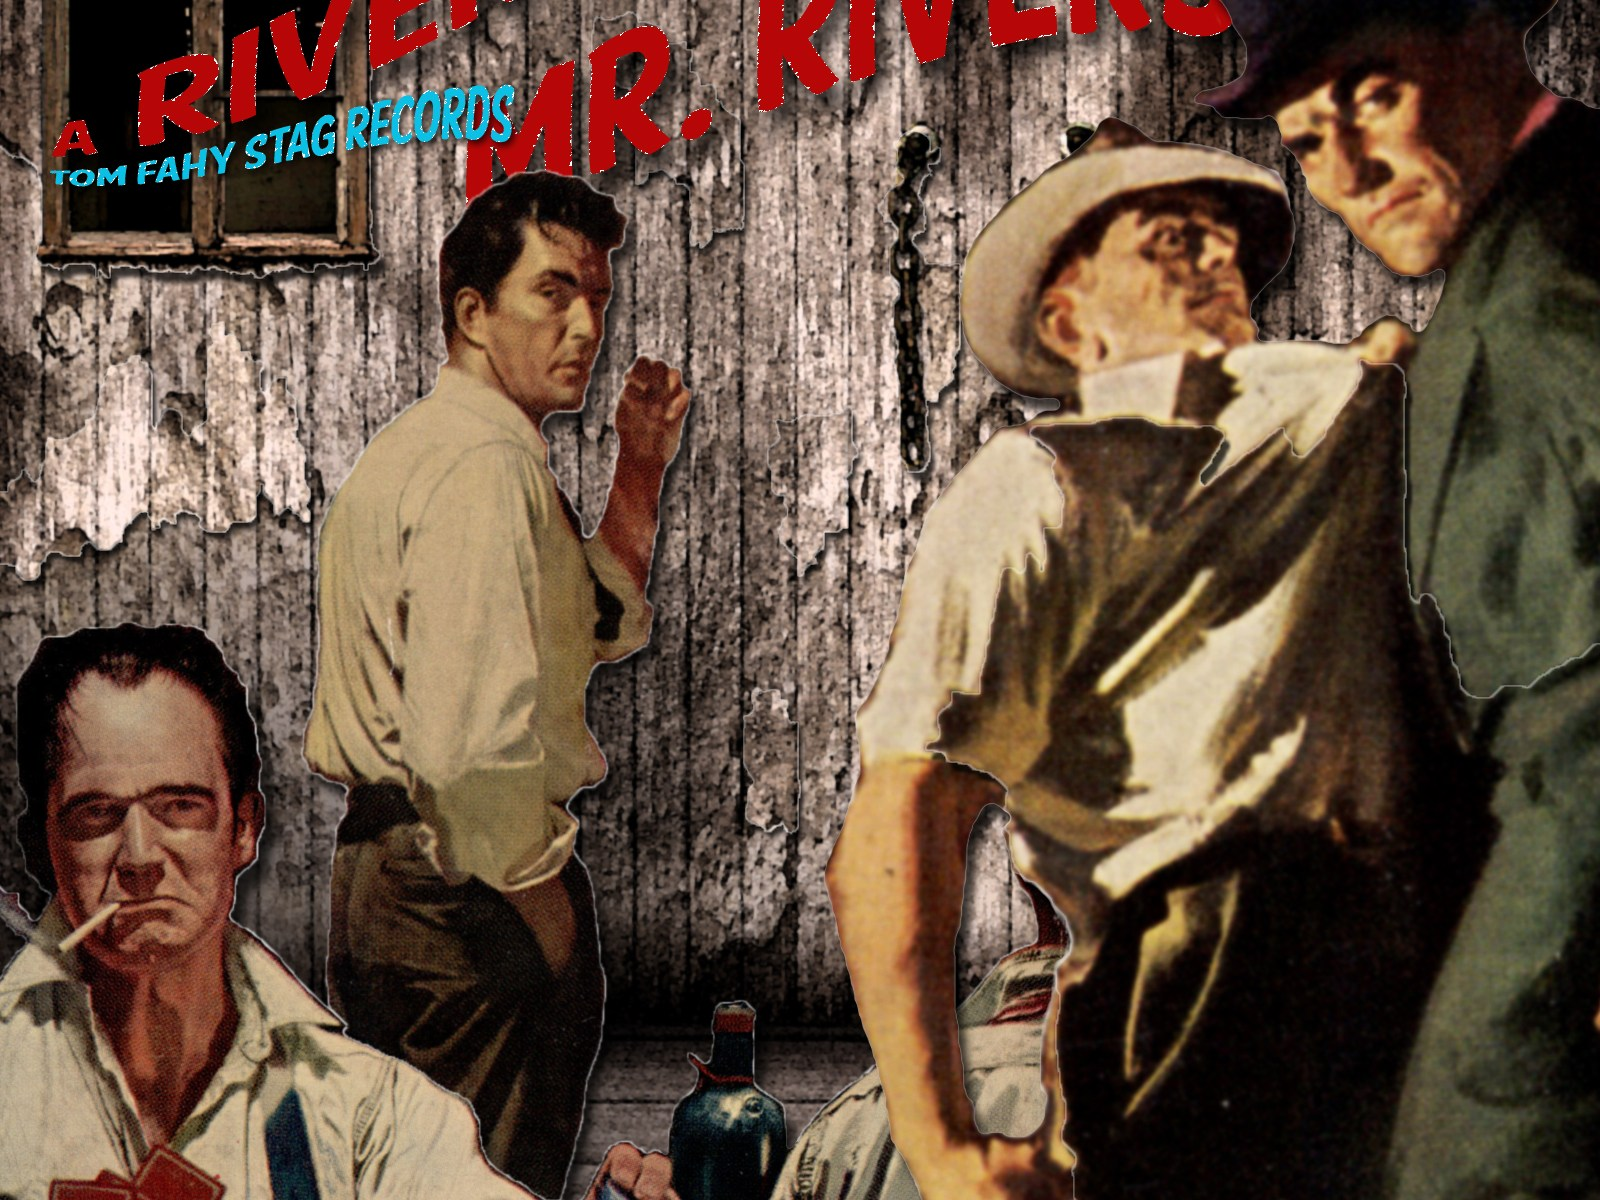 A River for Mr. Rivers, by Tom Fahy (2012)